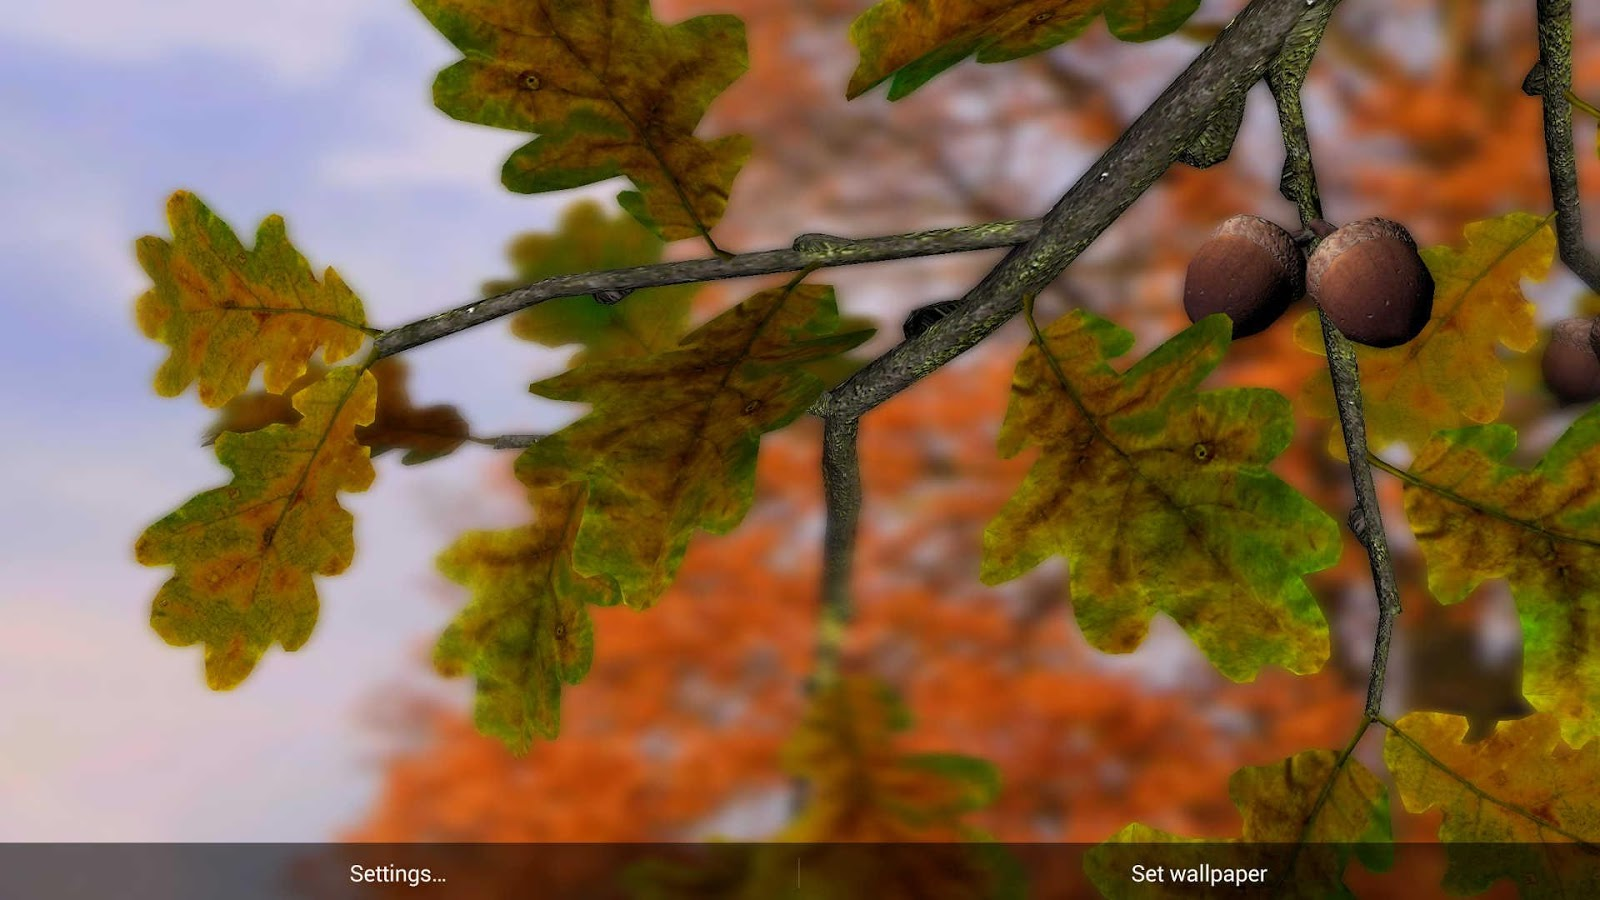 3d Parallax Background Live Wallpaper For Android Os Autumn Leaves In Hd Gyro 3d Xl Parallax Wallpaper